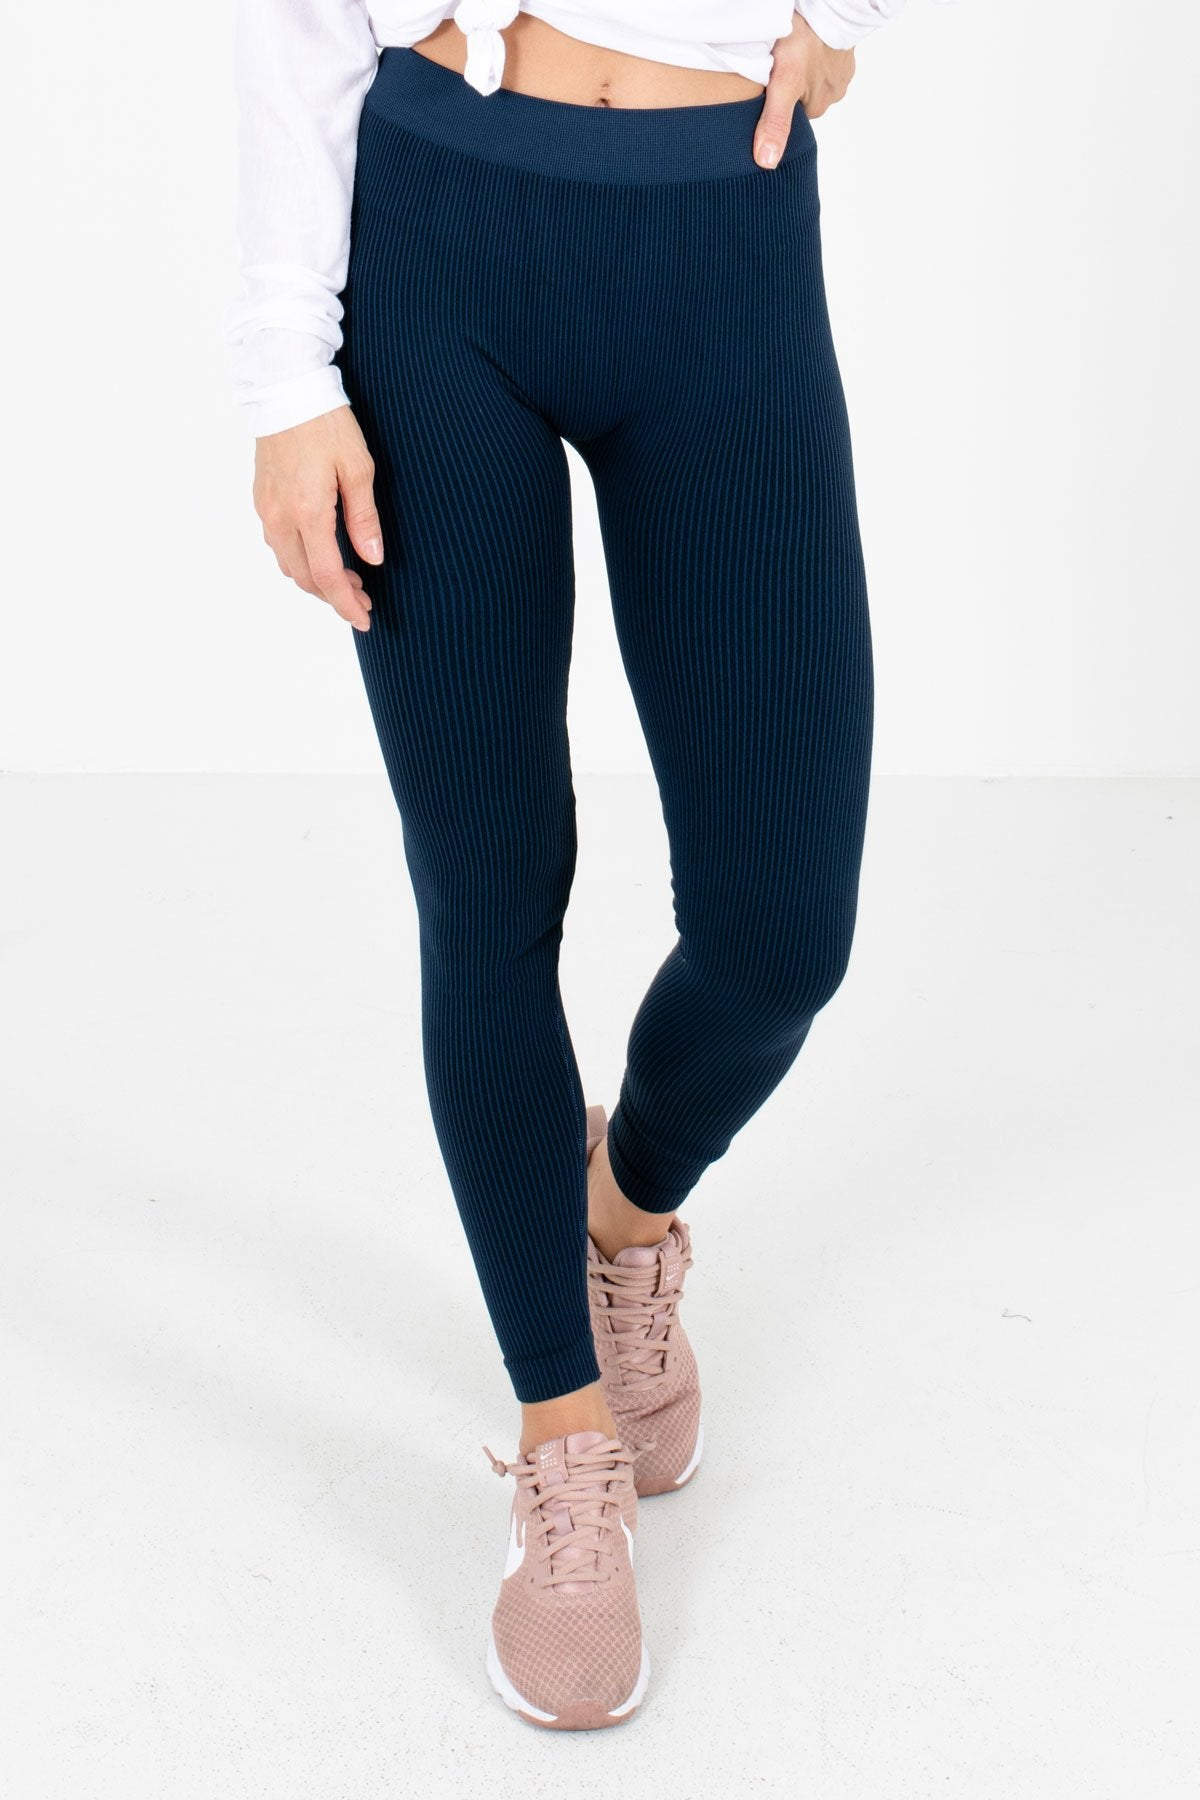 Navy Striped High-Quality Stretchy Material Boutique Active Leggings for Women